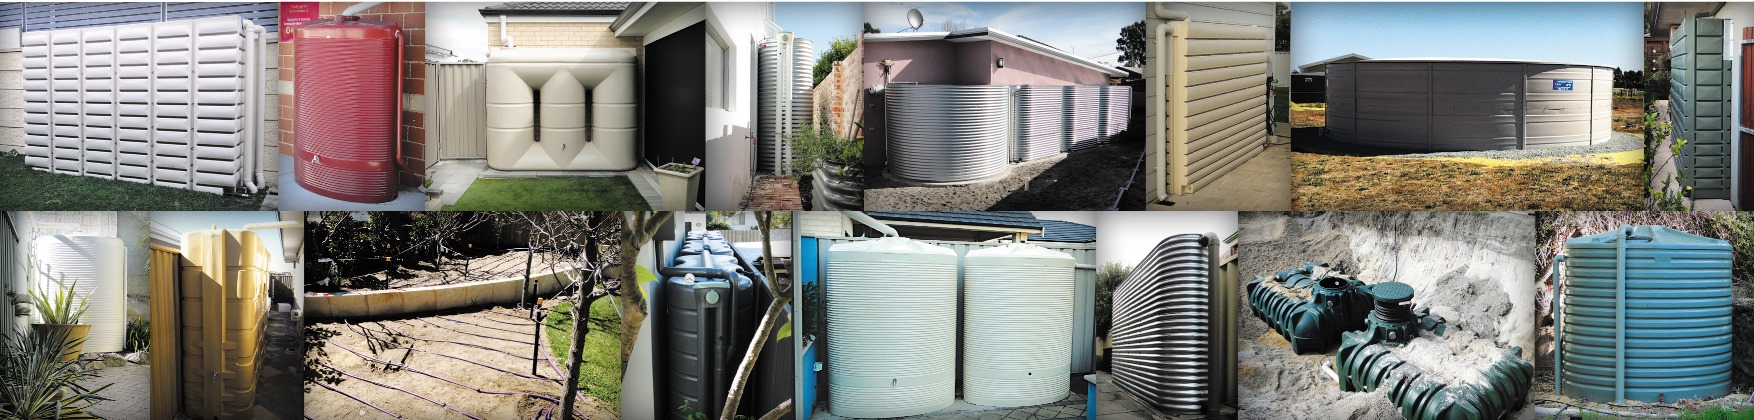 Ideas and advice about rainwater tanks